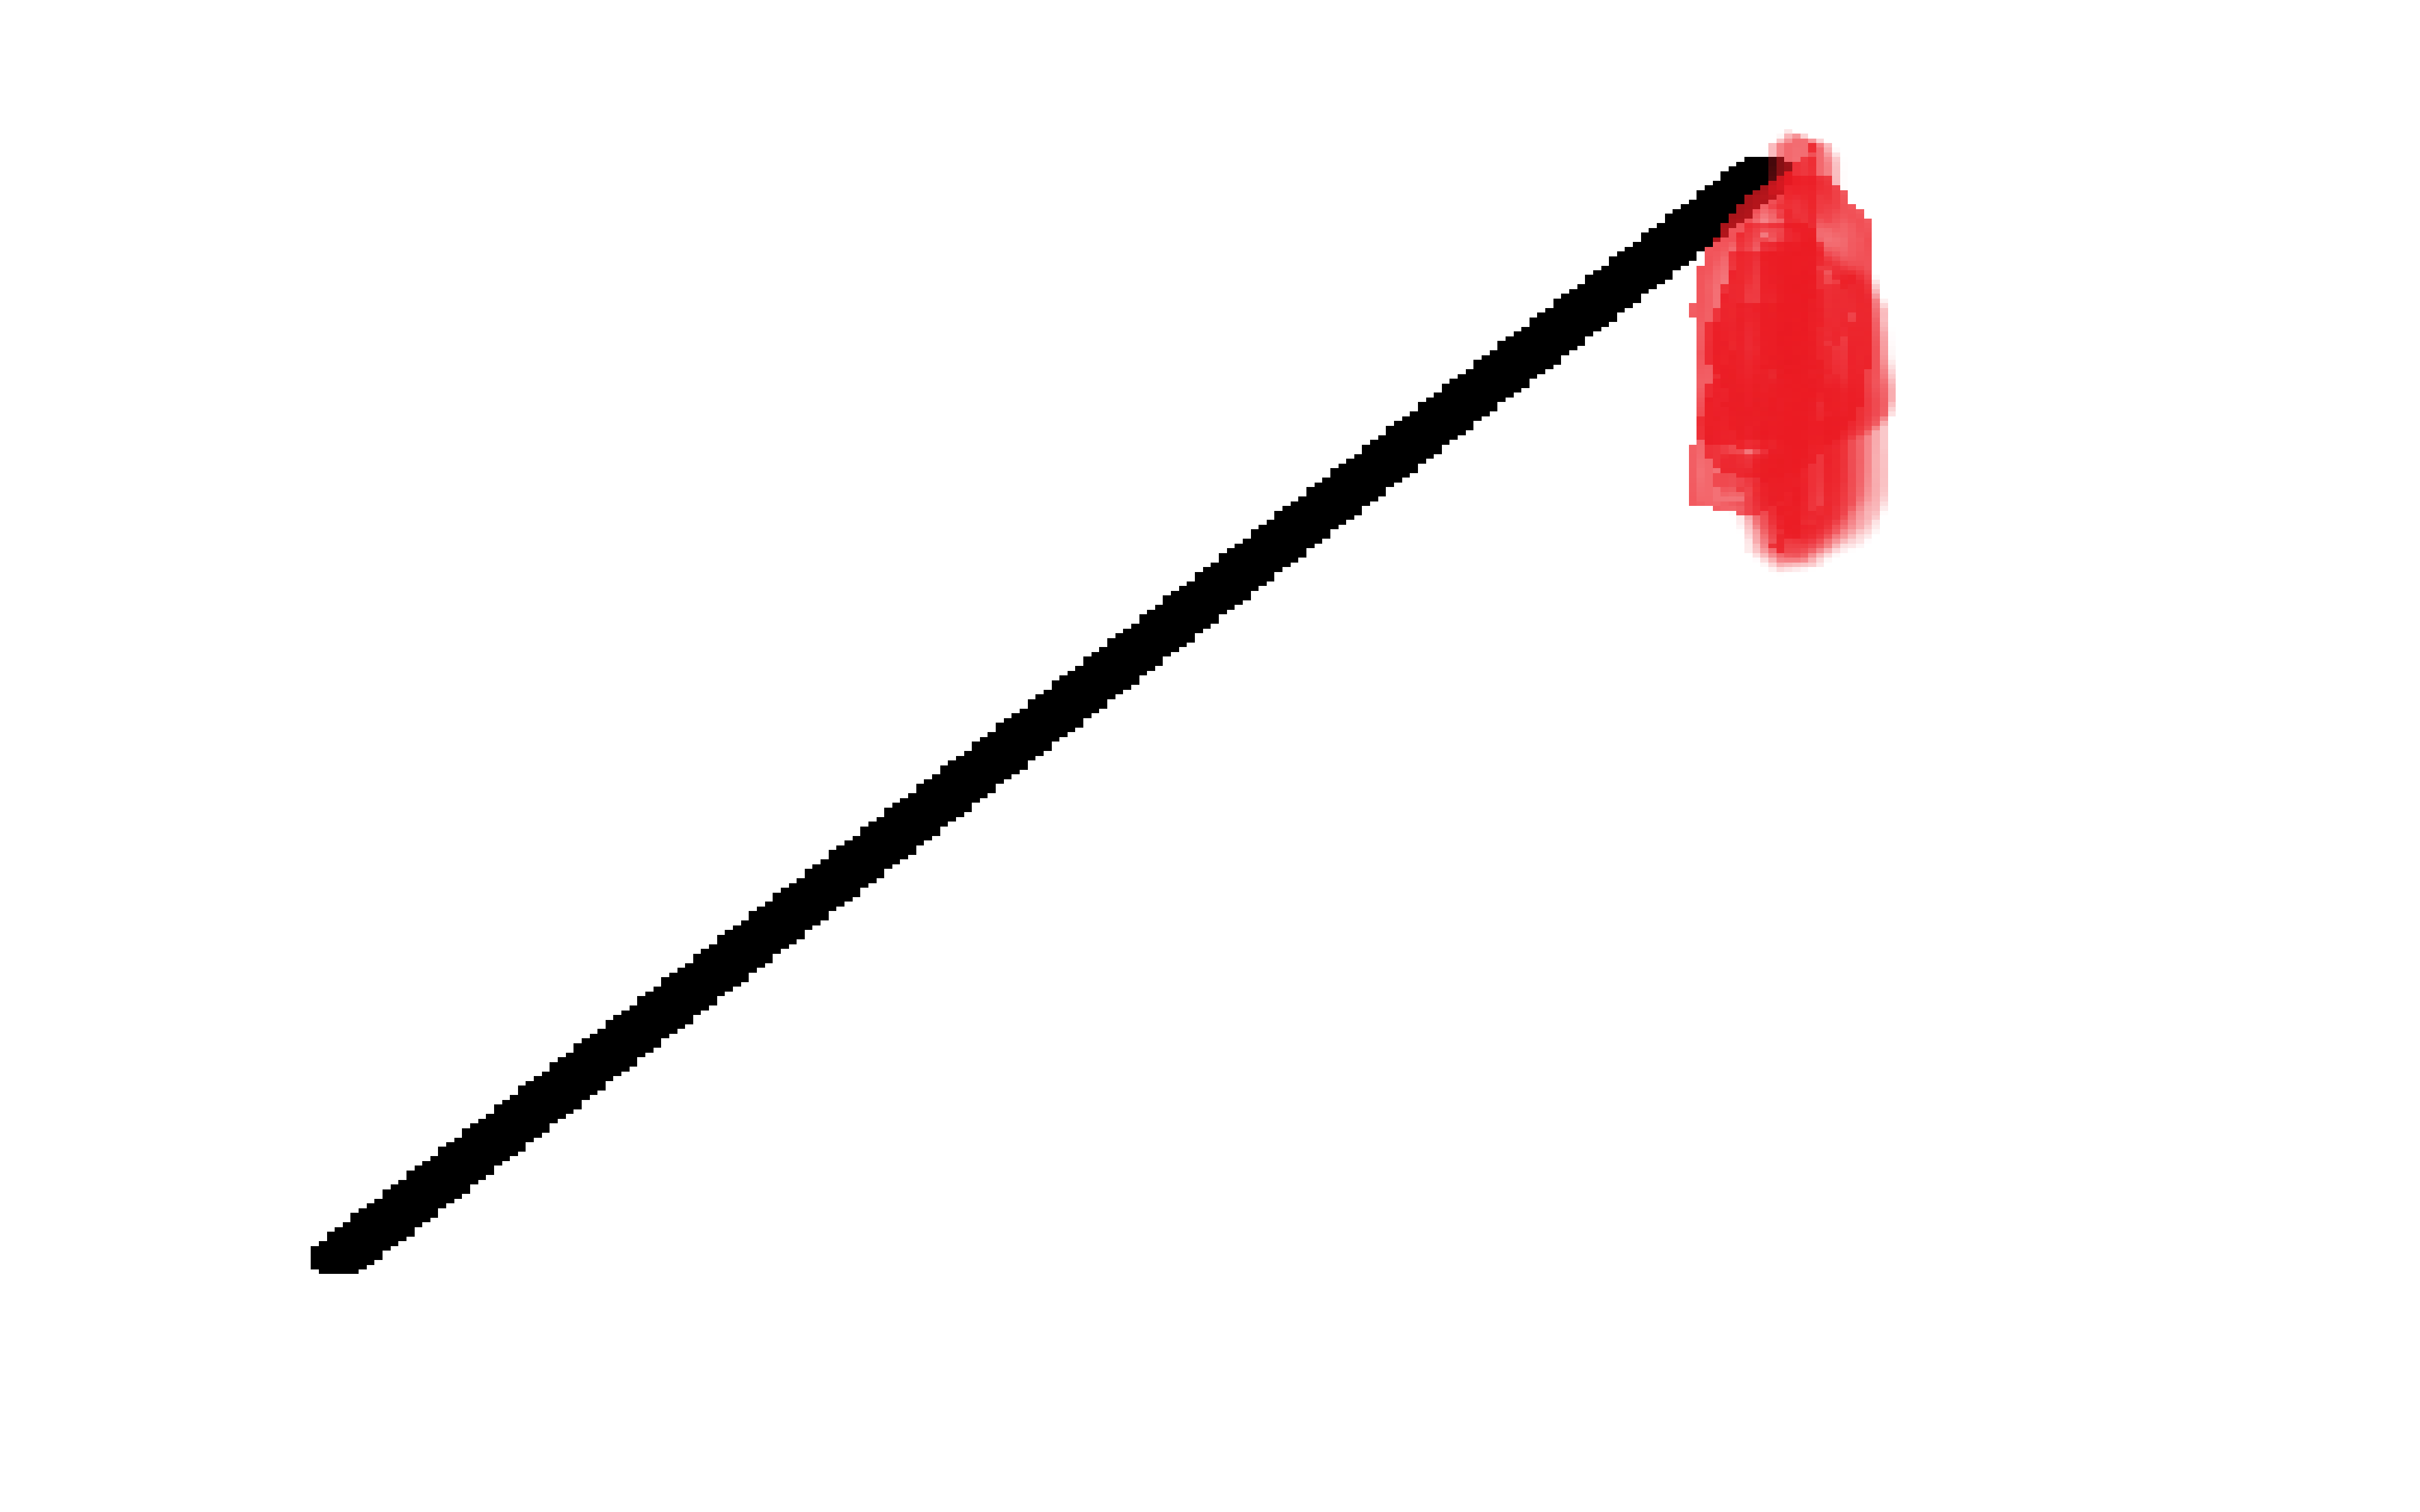 I Would Walk The 30 Yards To The Corner Of Our Back Yard, Sequester Myself Behind A Old, Shedding Cedar Tree, And Stay Long Enough To Make My Parents Worry Hdpng.com  - Hobo Stick, Transparent background PNG HD thumbnail